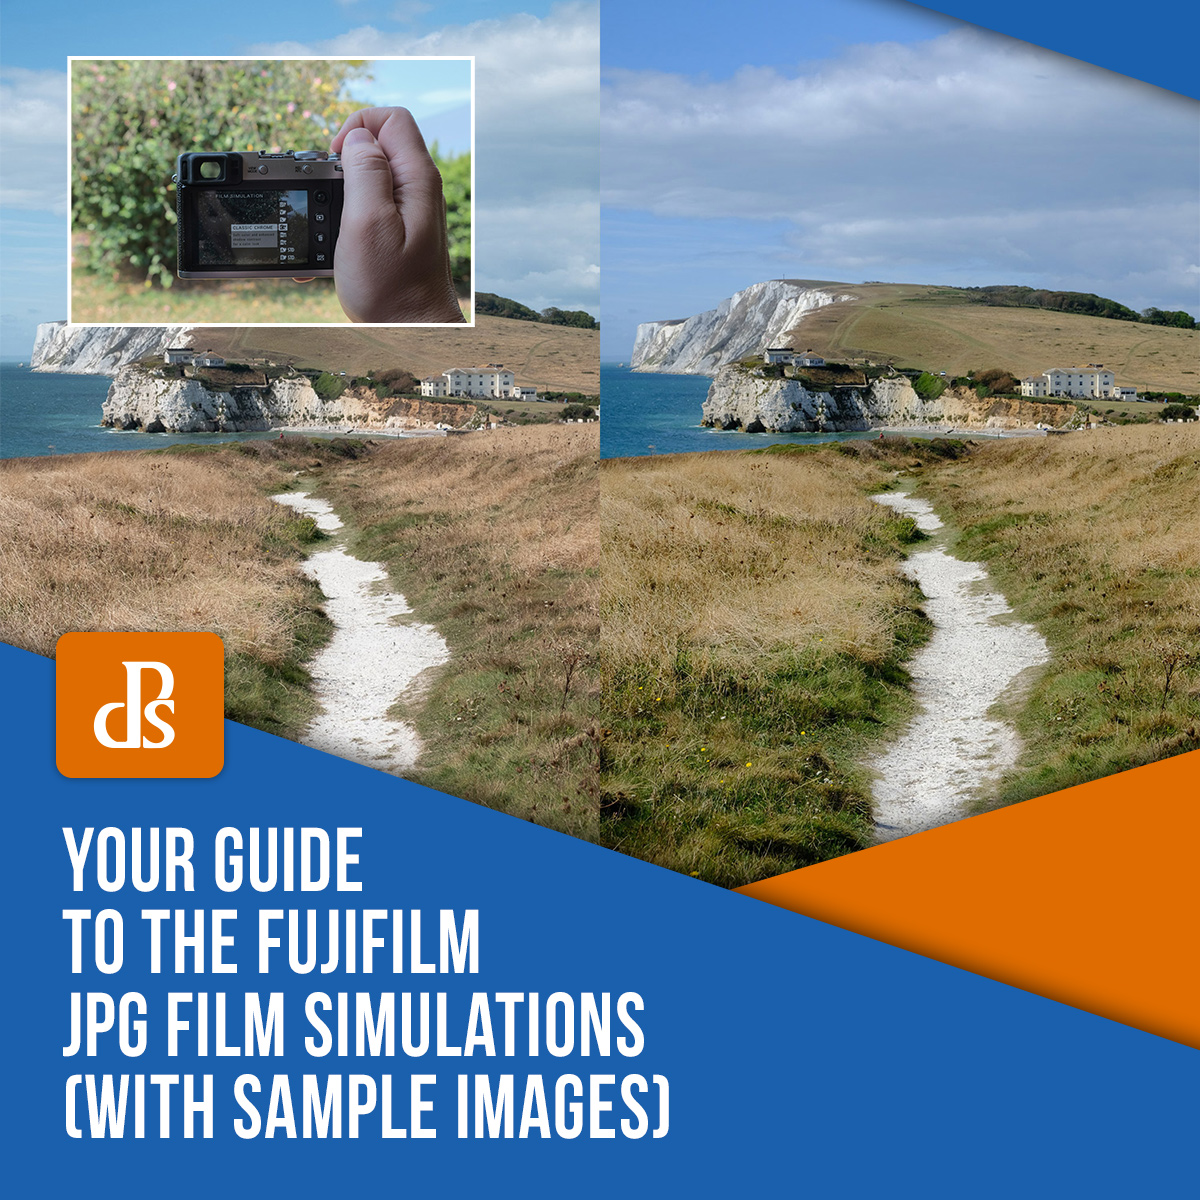 fujifilm-jpg-film-simulations-guide